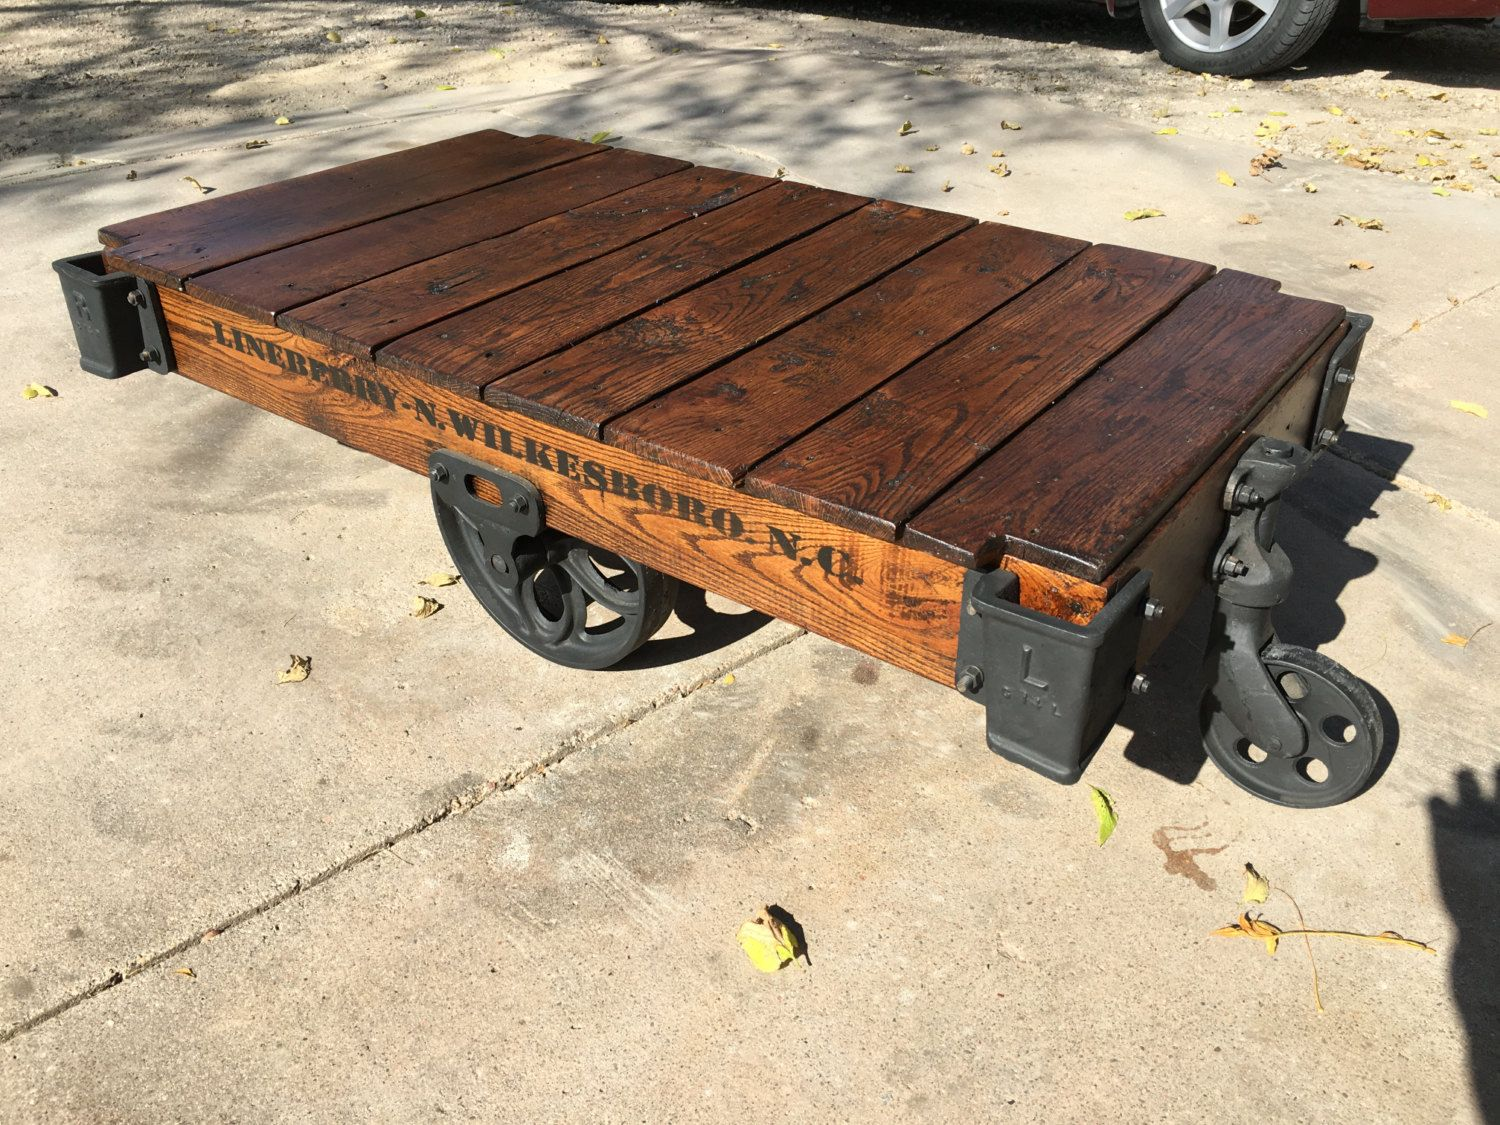 Lineberry Factory Cart / Railroad Cart Coffee Table By CCFACTORYCARTS On  Etsy